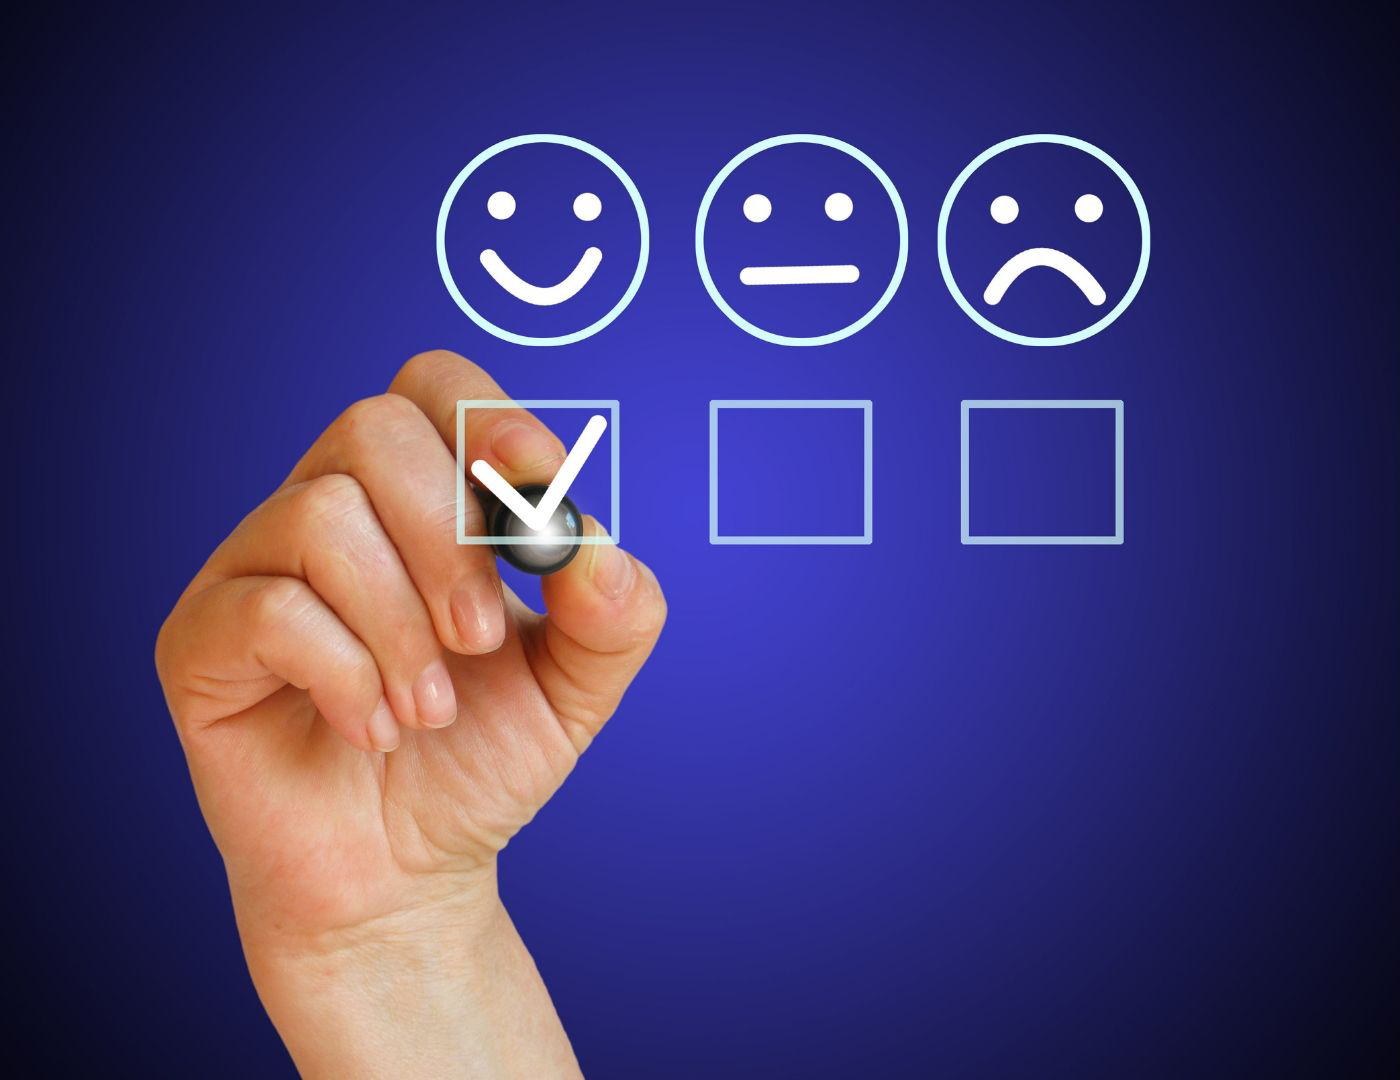 Customer Service: Your #1 Worry